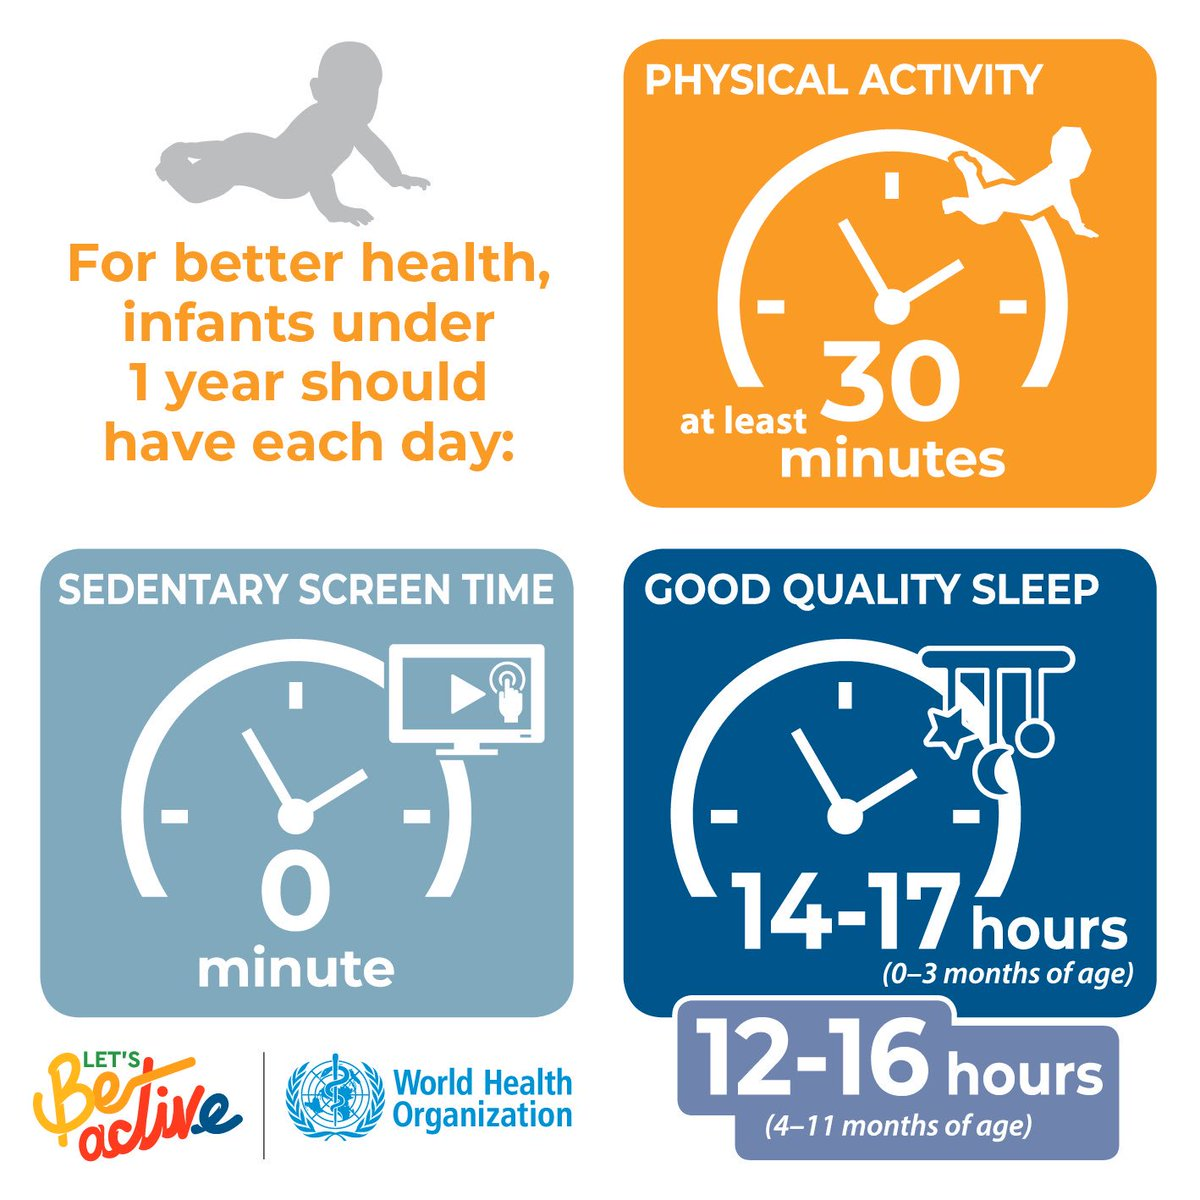 Infants (less than 1 year) should be physically active several times a day in a variety of ways, particularly through interactive floor-based play; more is better - including at least 30 minutes tummy time spread throughout the day while awake http://bit.ly/2ICRzcT